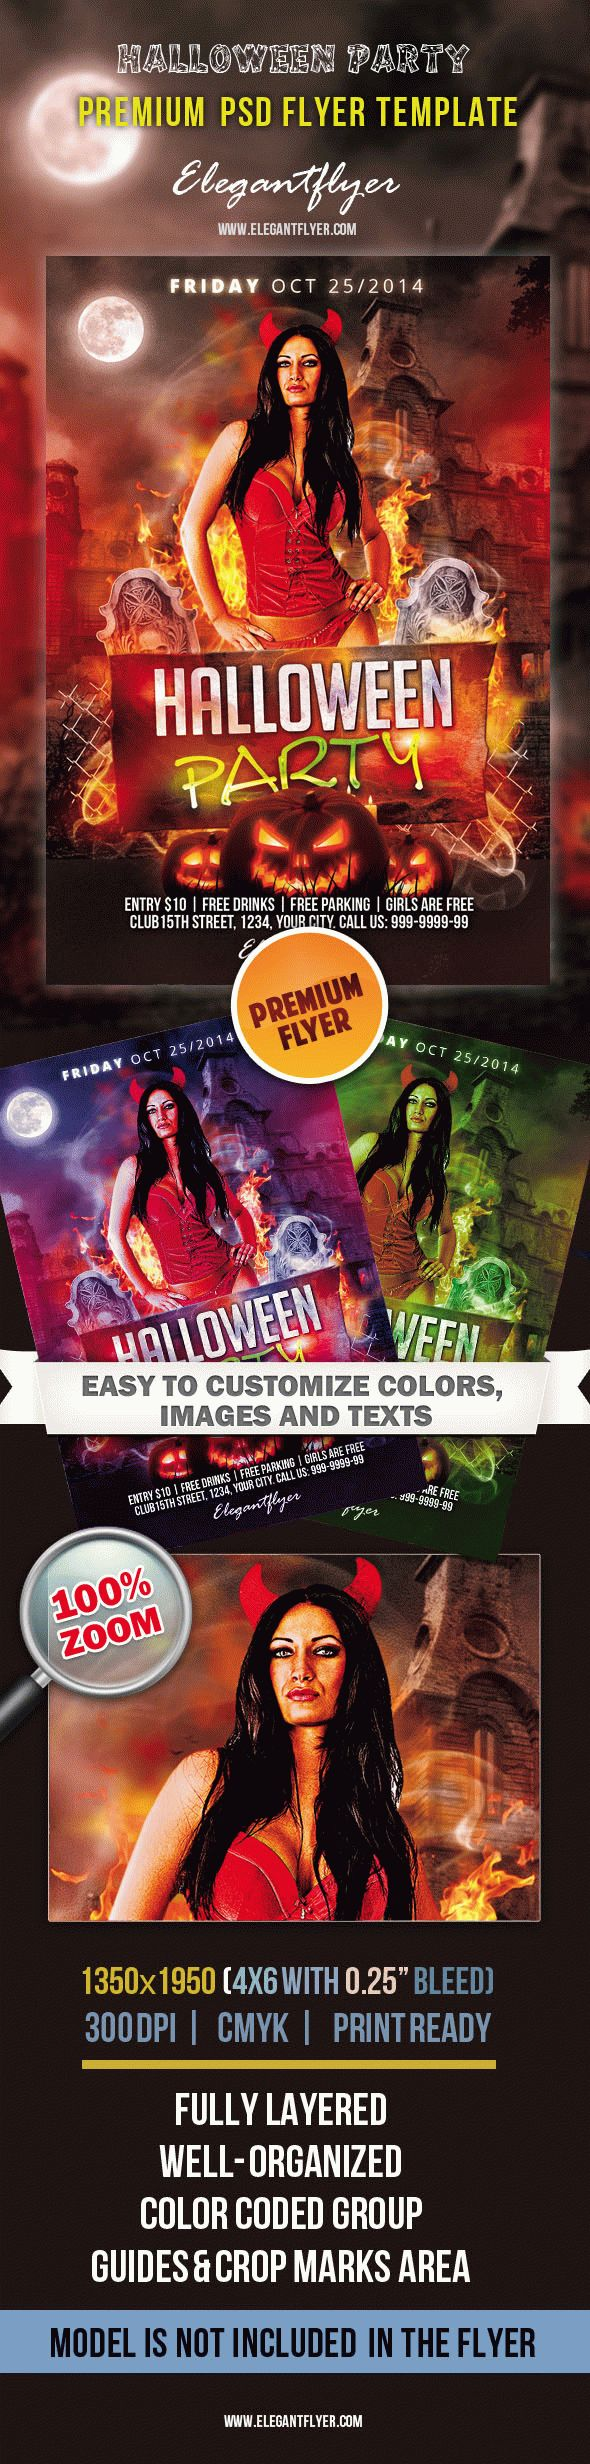 Halloween Party -Premium Club flyer PSD Template